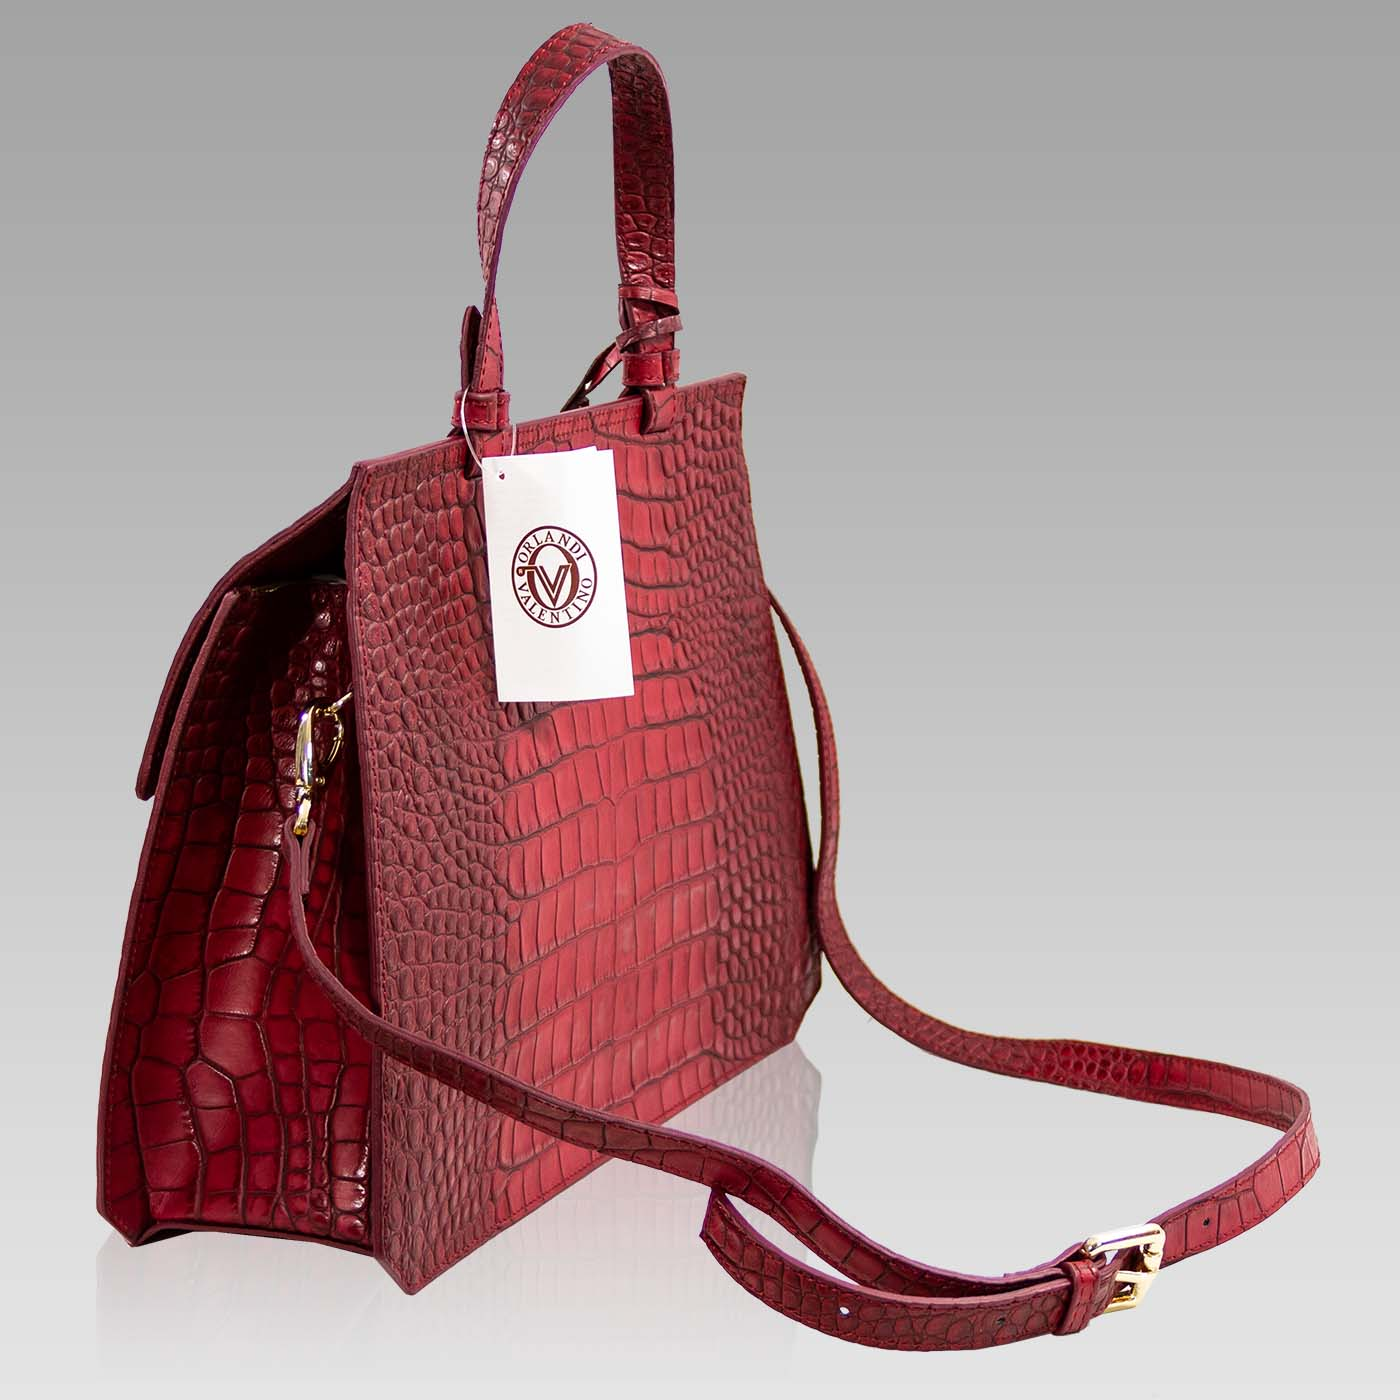 Valentino_Orlandi_Large_Purse_Scarlet_Red_Croc_Embossed_Leather_Tote_01VO42161CLRD_01.jpg